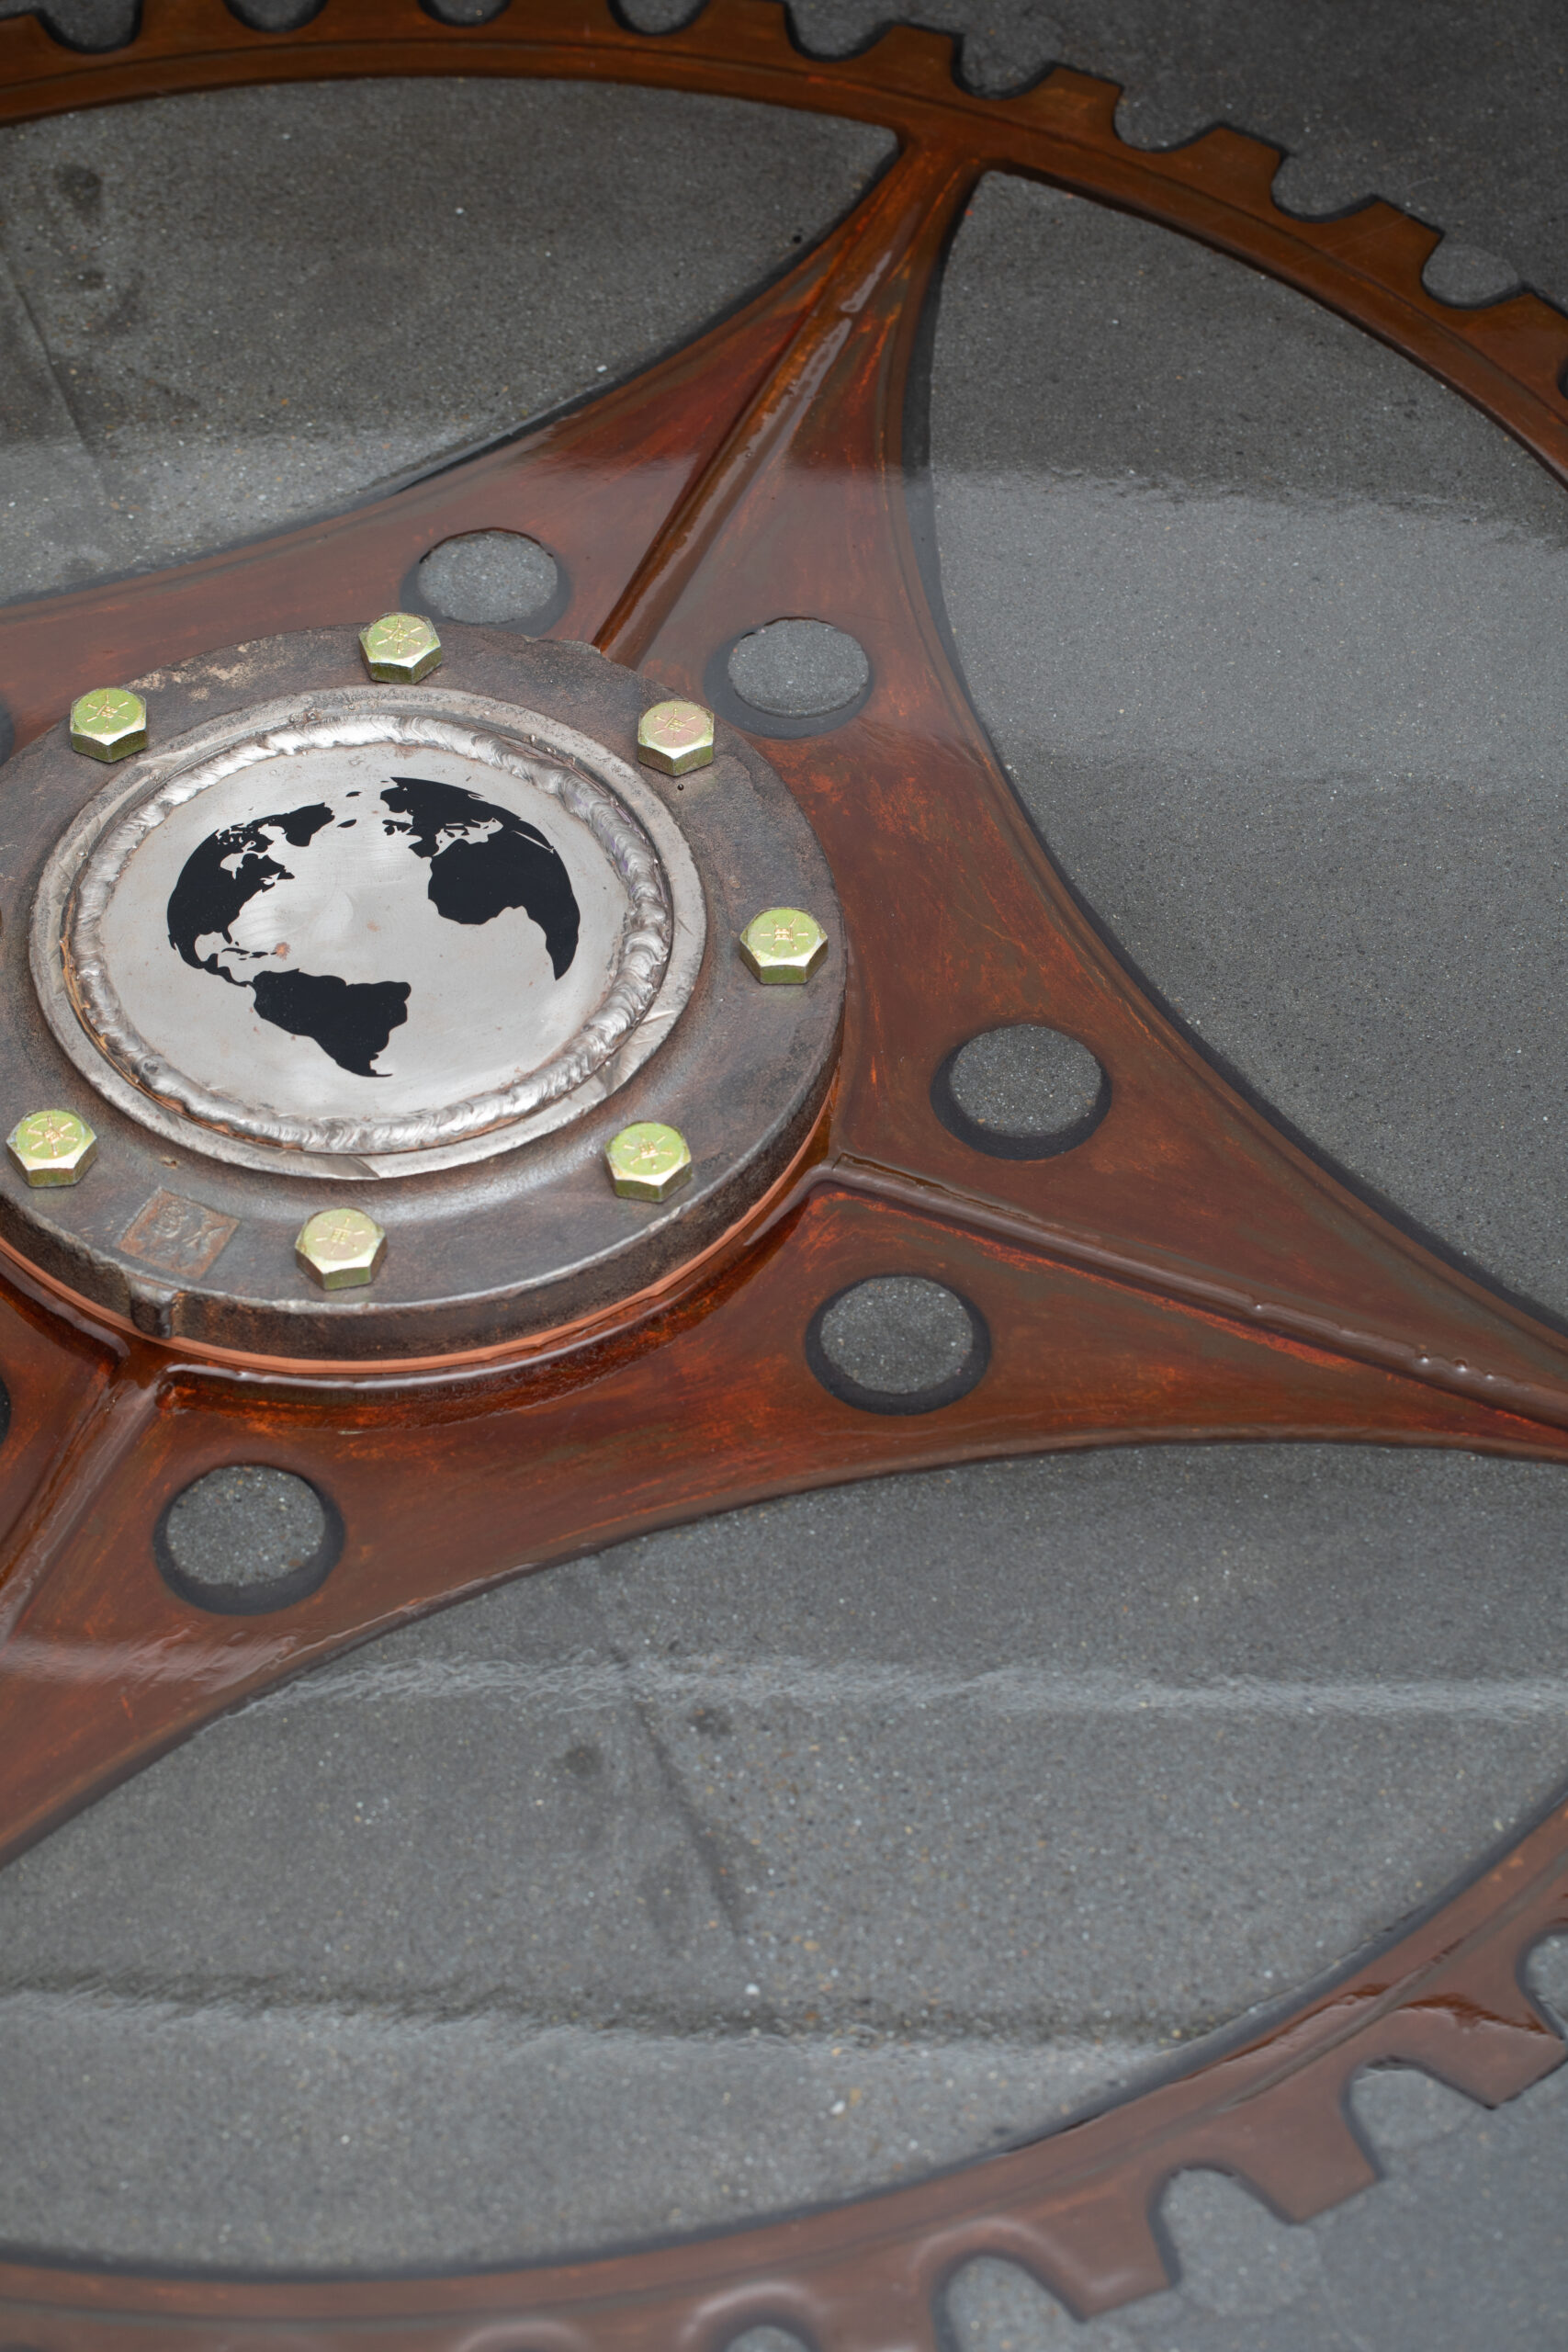 a close up look at the concrete gear table with cogs and intricate details